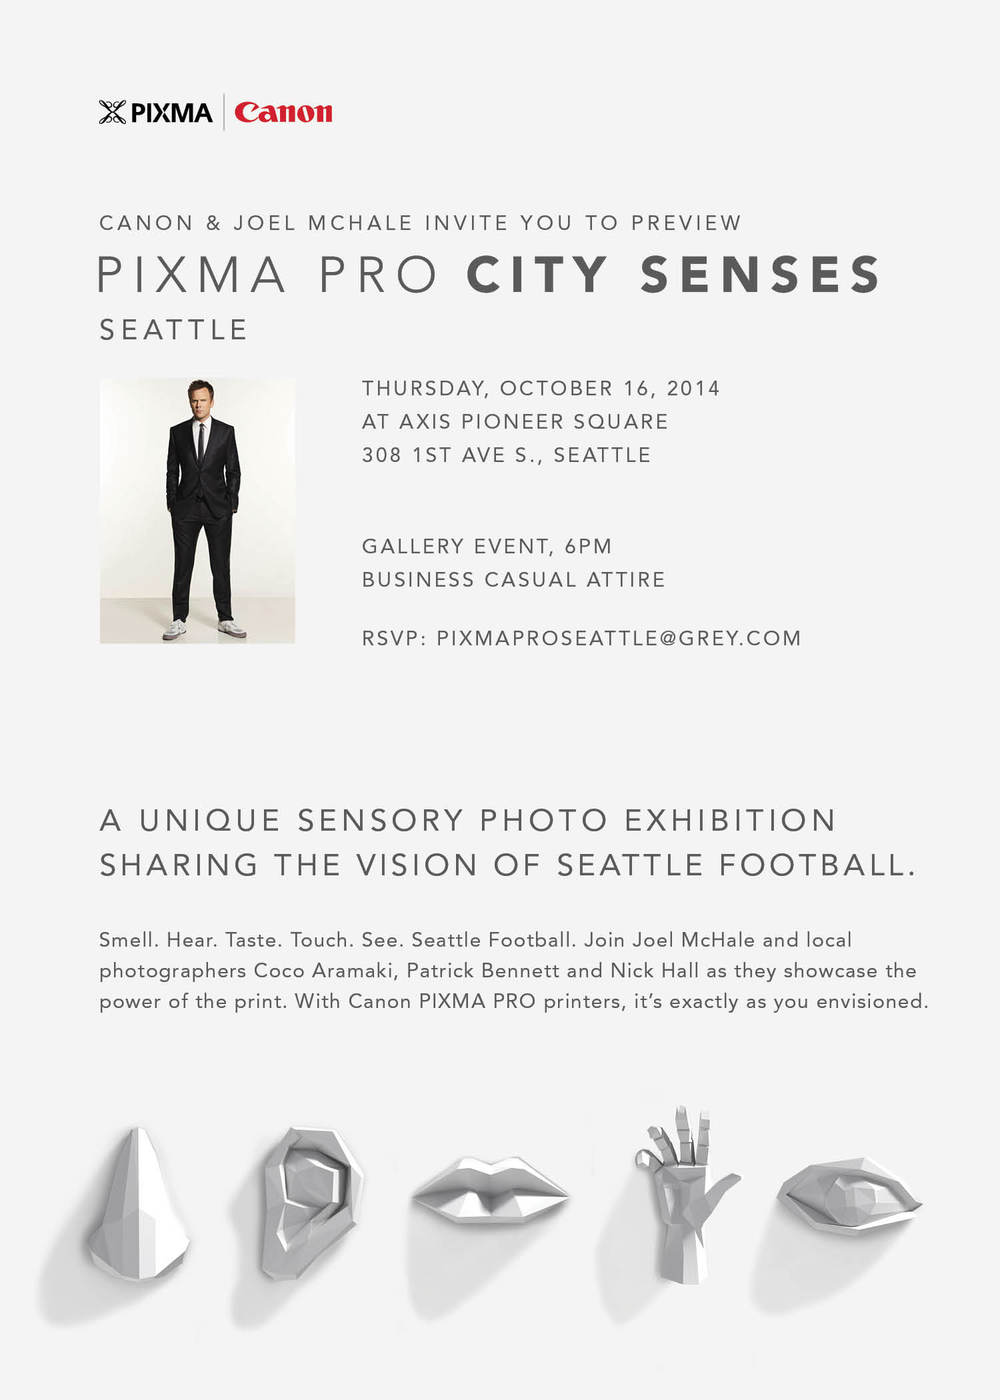 canon-pixma-pro-city-senses-gallery-event-in-seattle-wa-on-101614_15930399181_o.jpg